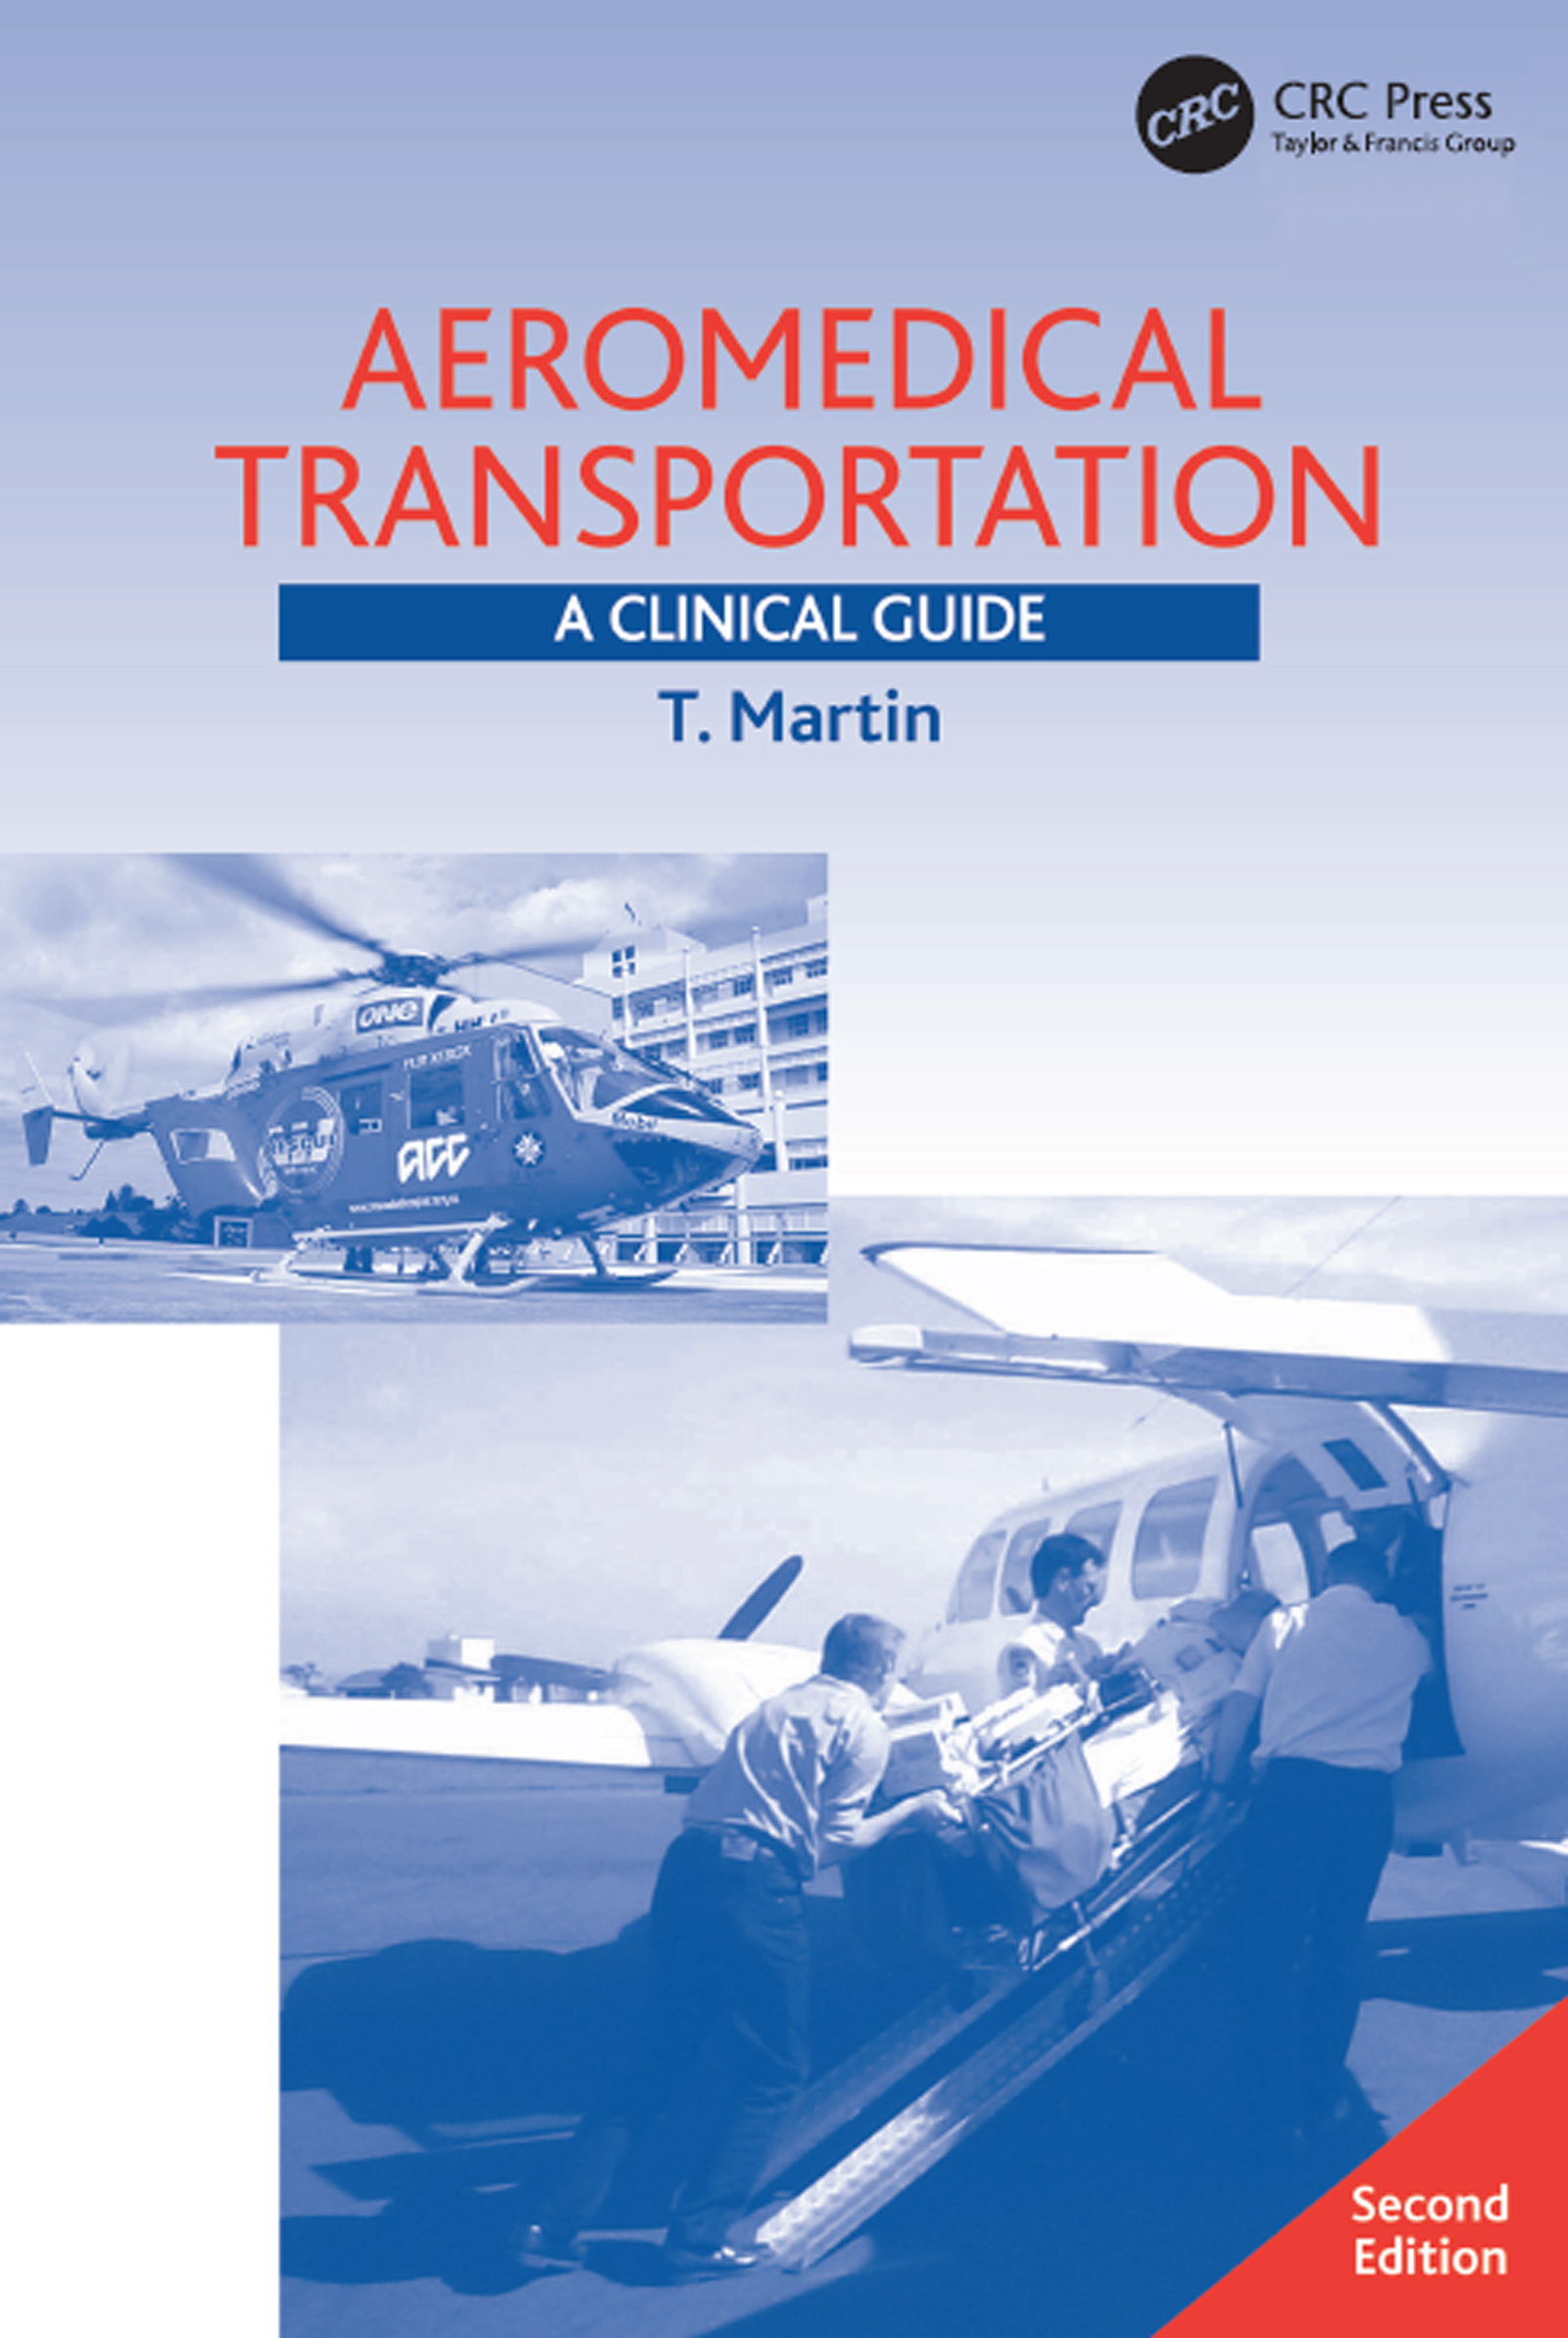 Aeromedical Transportation: A Clinical Guide book cover